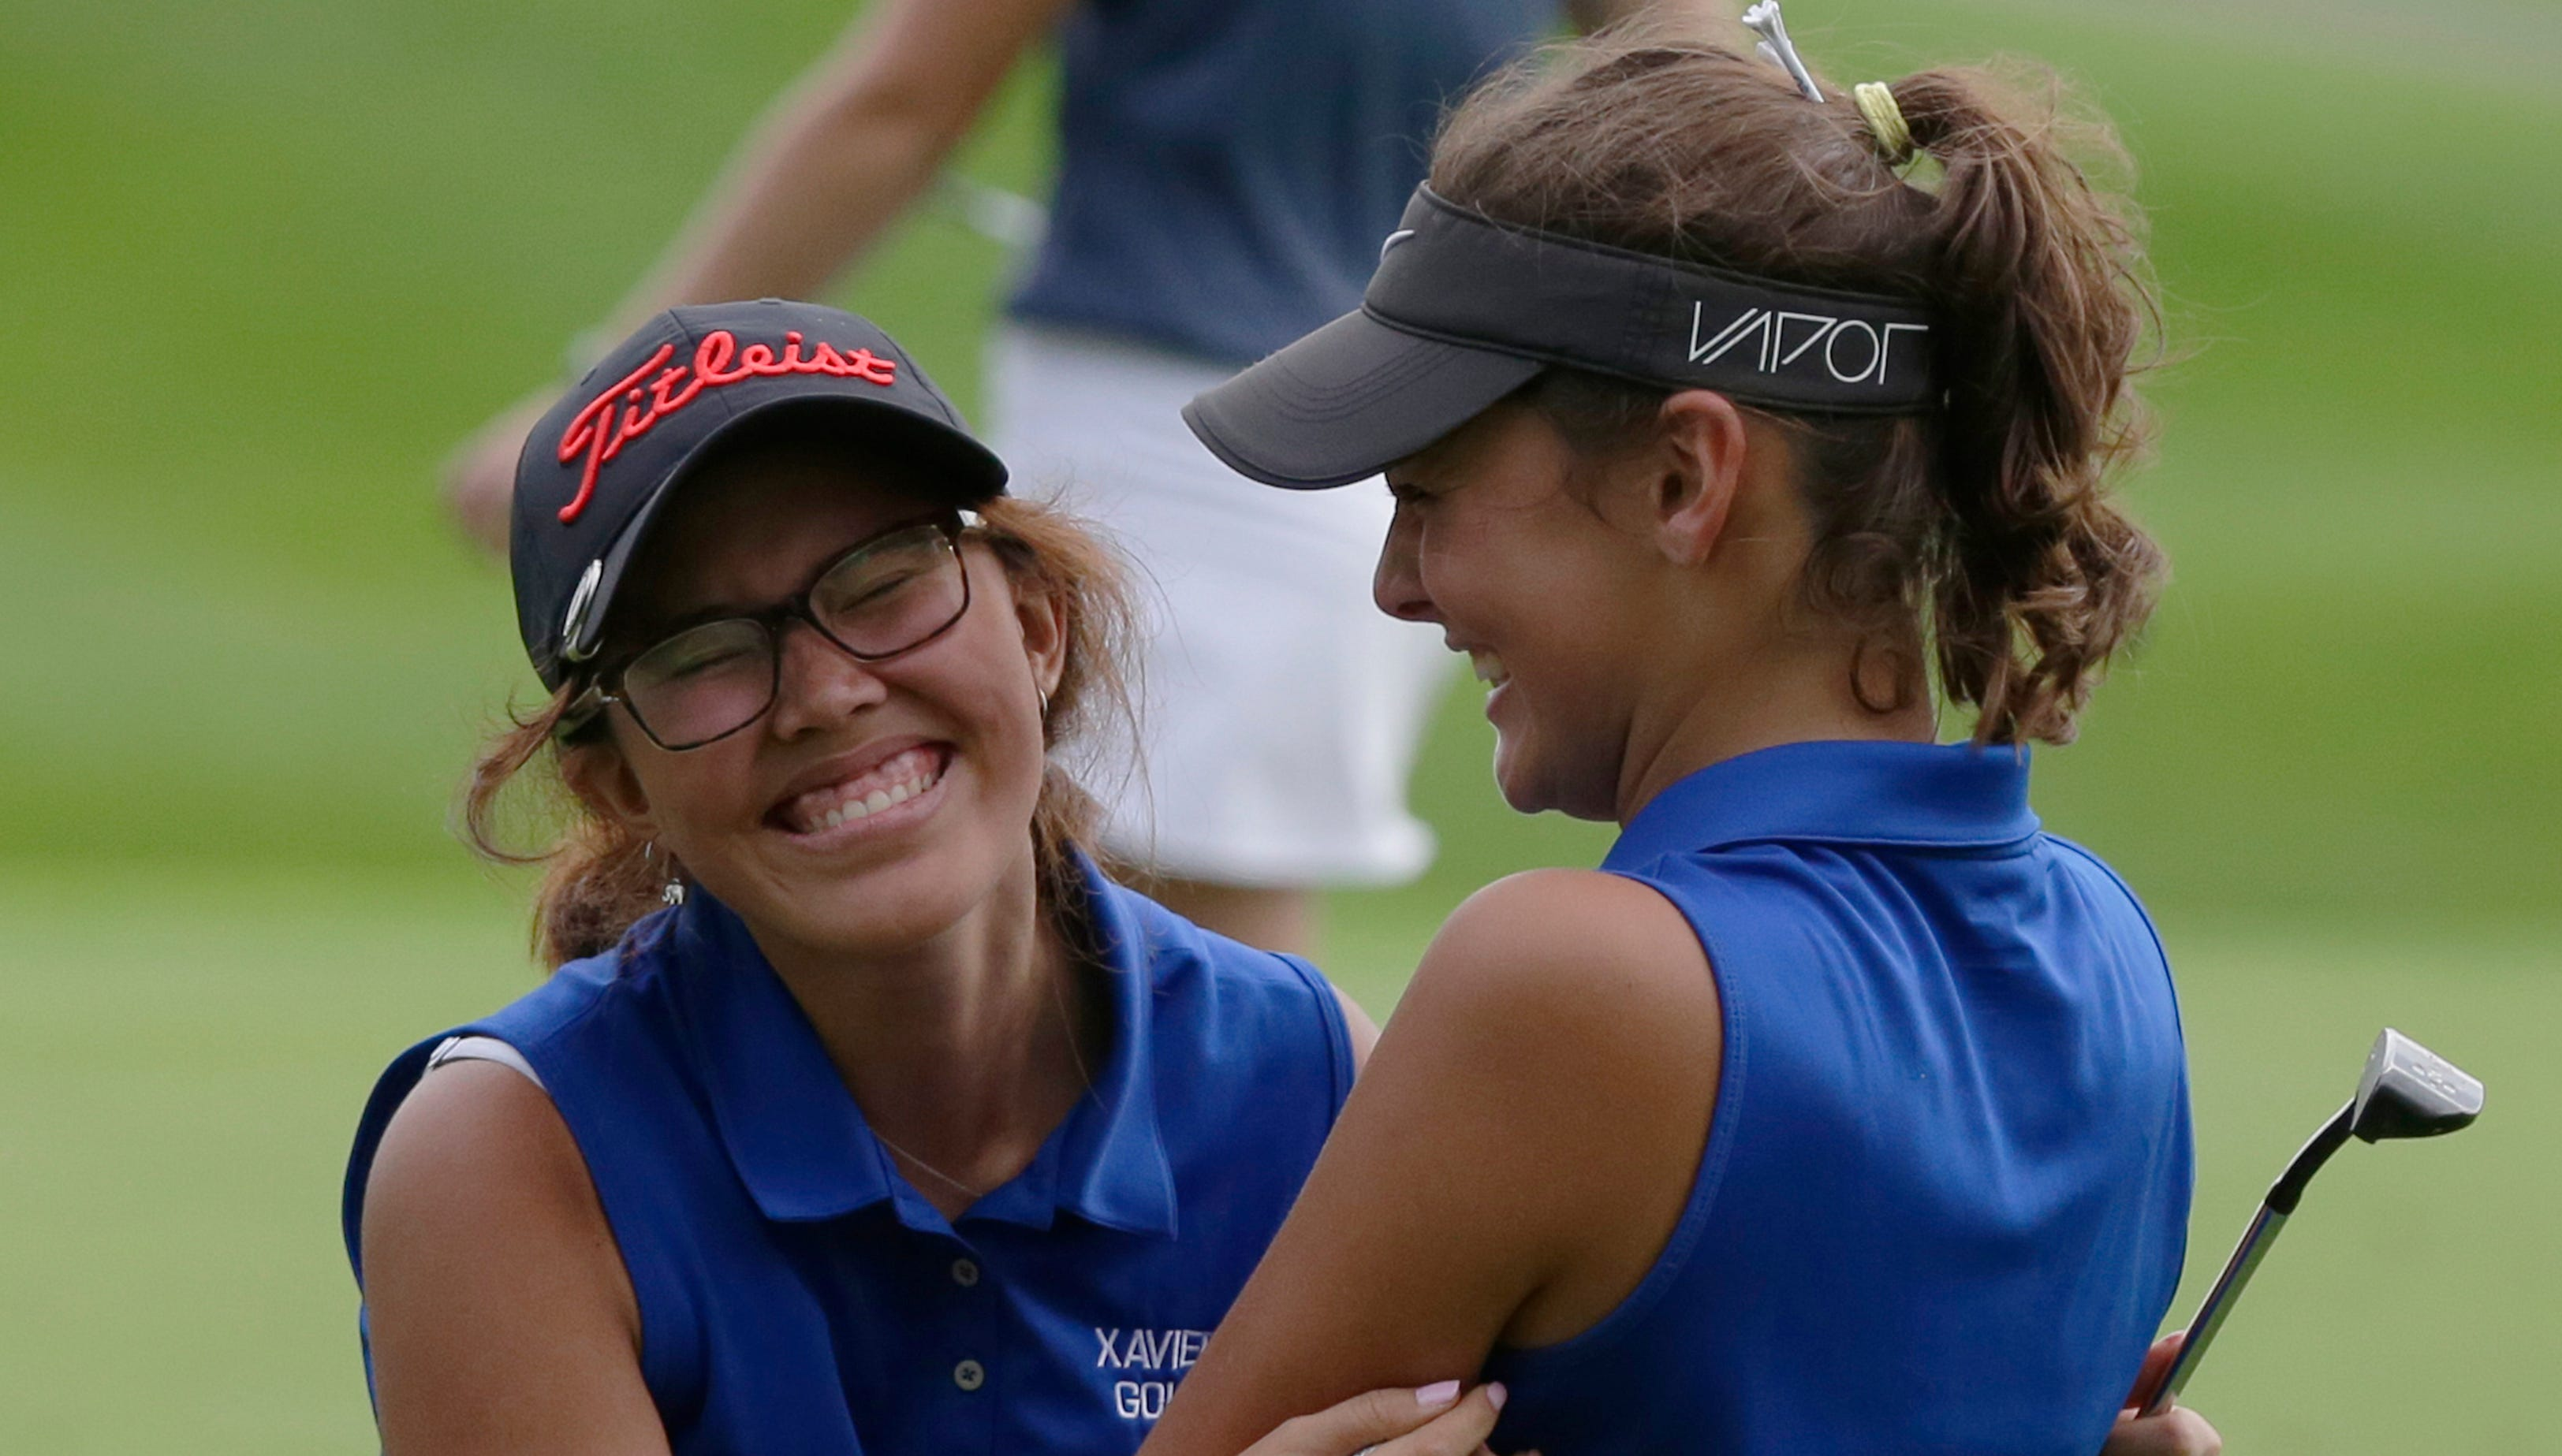 Xavier's Clair Phakamad wins Division 2 state golf title